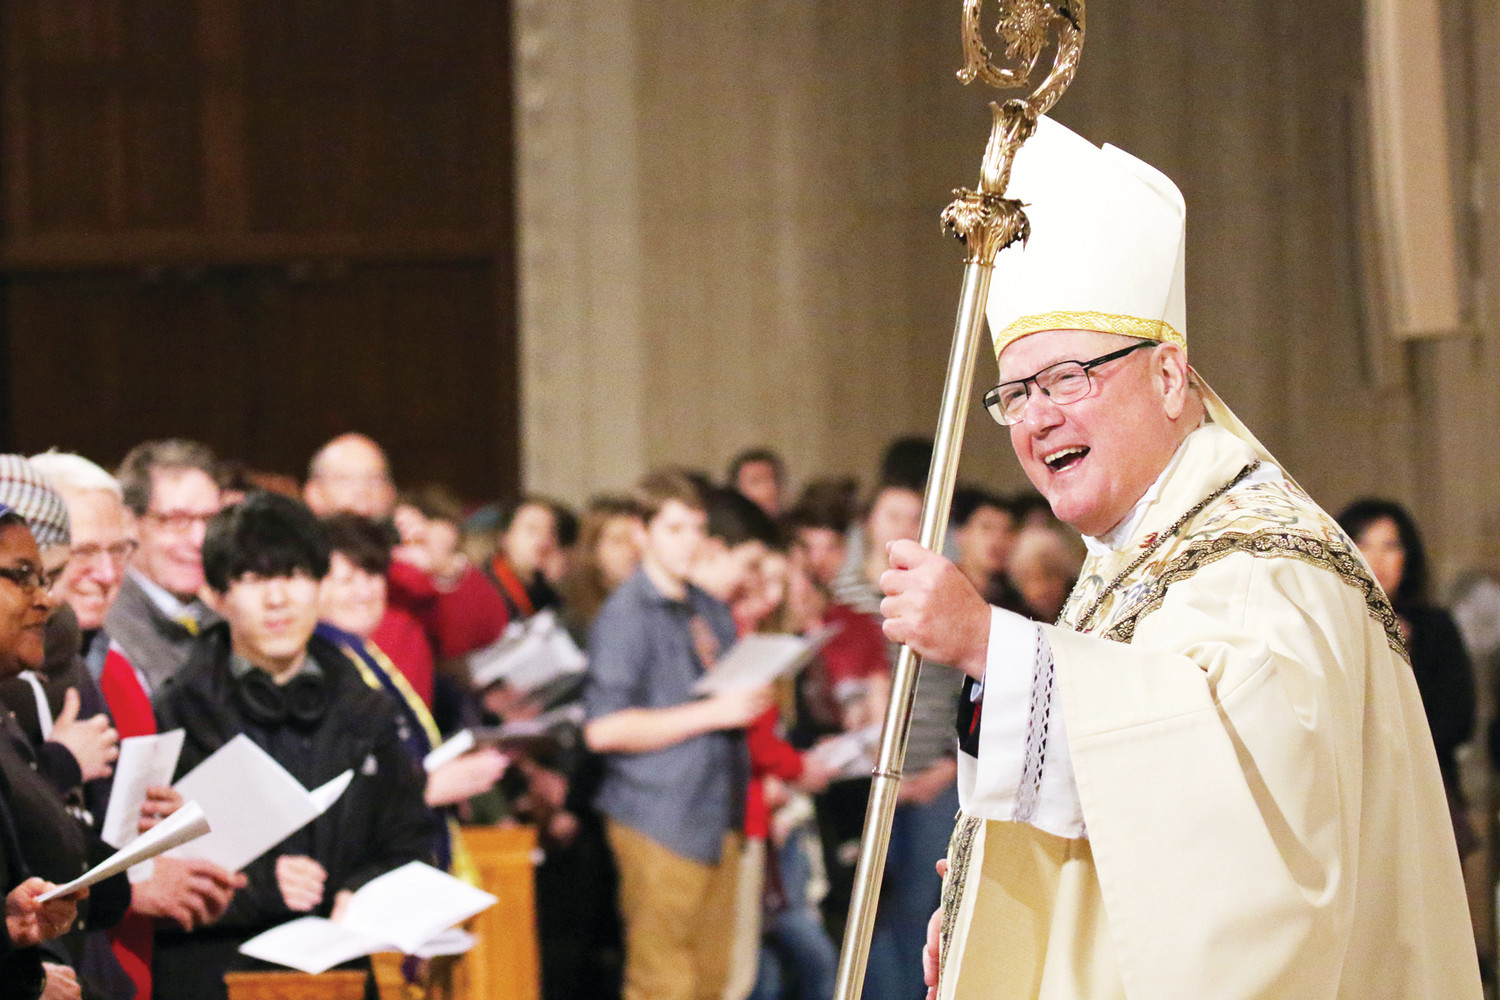 Cardinal Dolan, chairman of the U.S. Bishops' Committee on Pro-Life Activities, smiles as he processes from the sanctuary after celebrating the Mass.